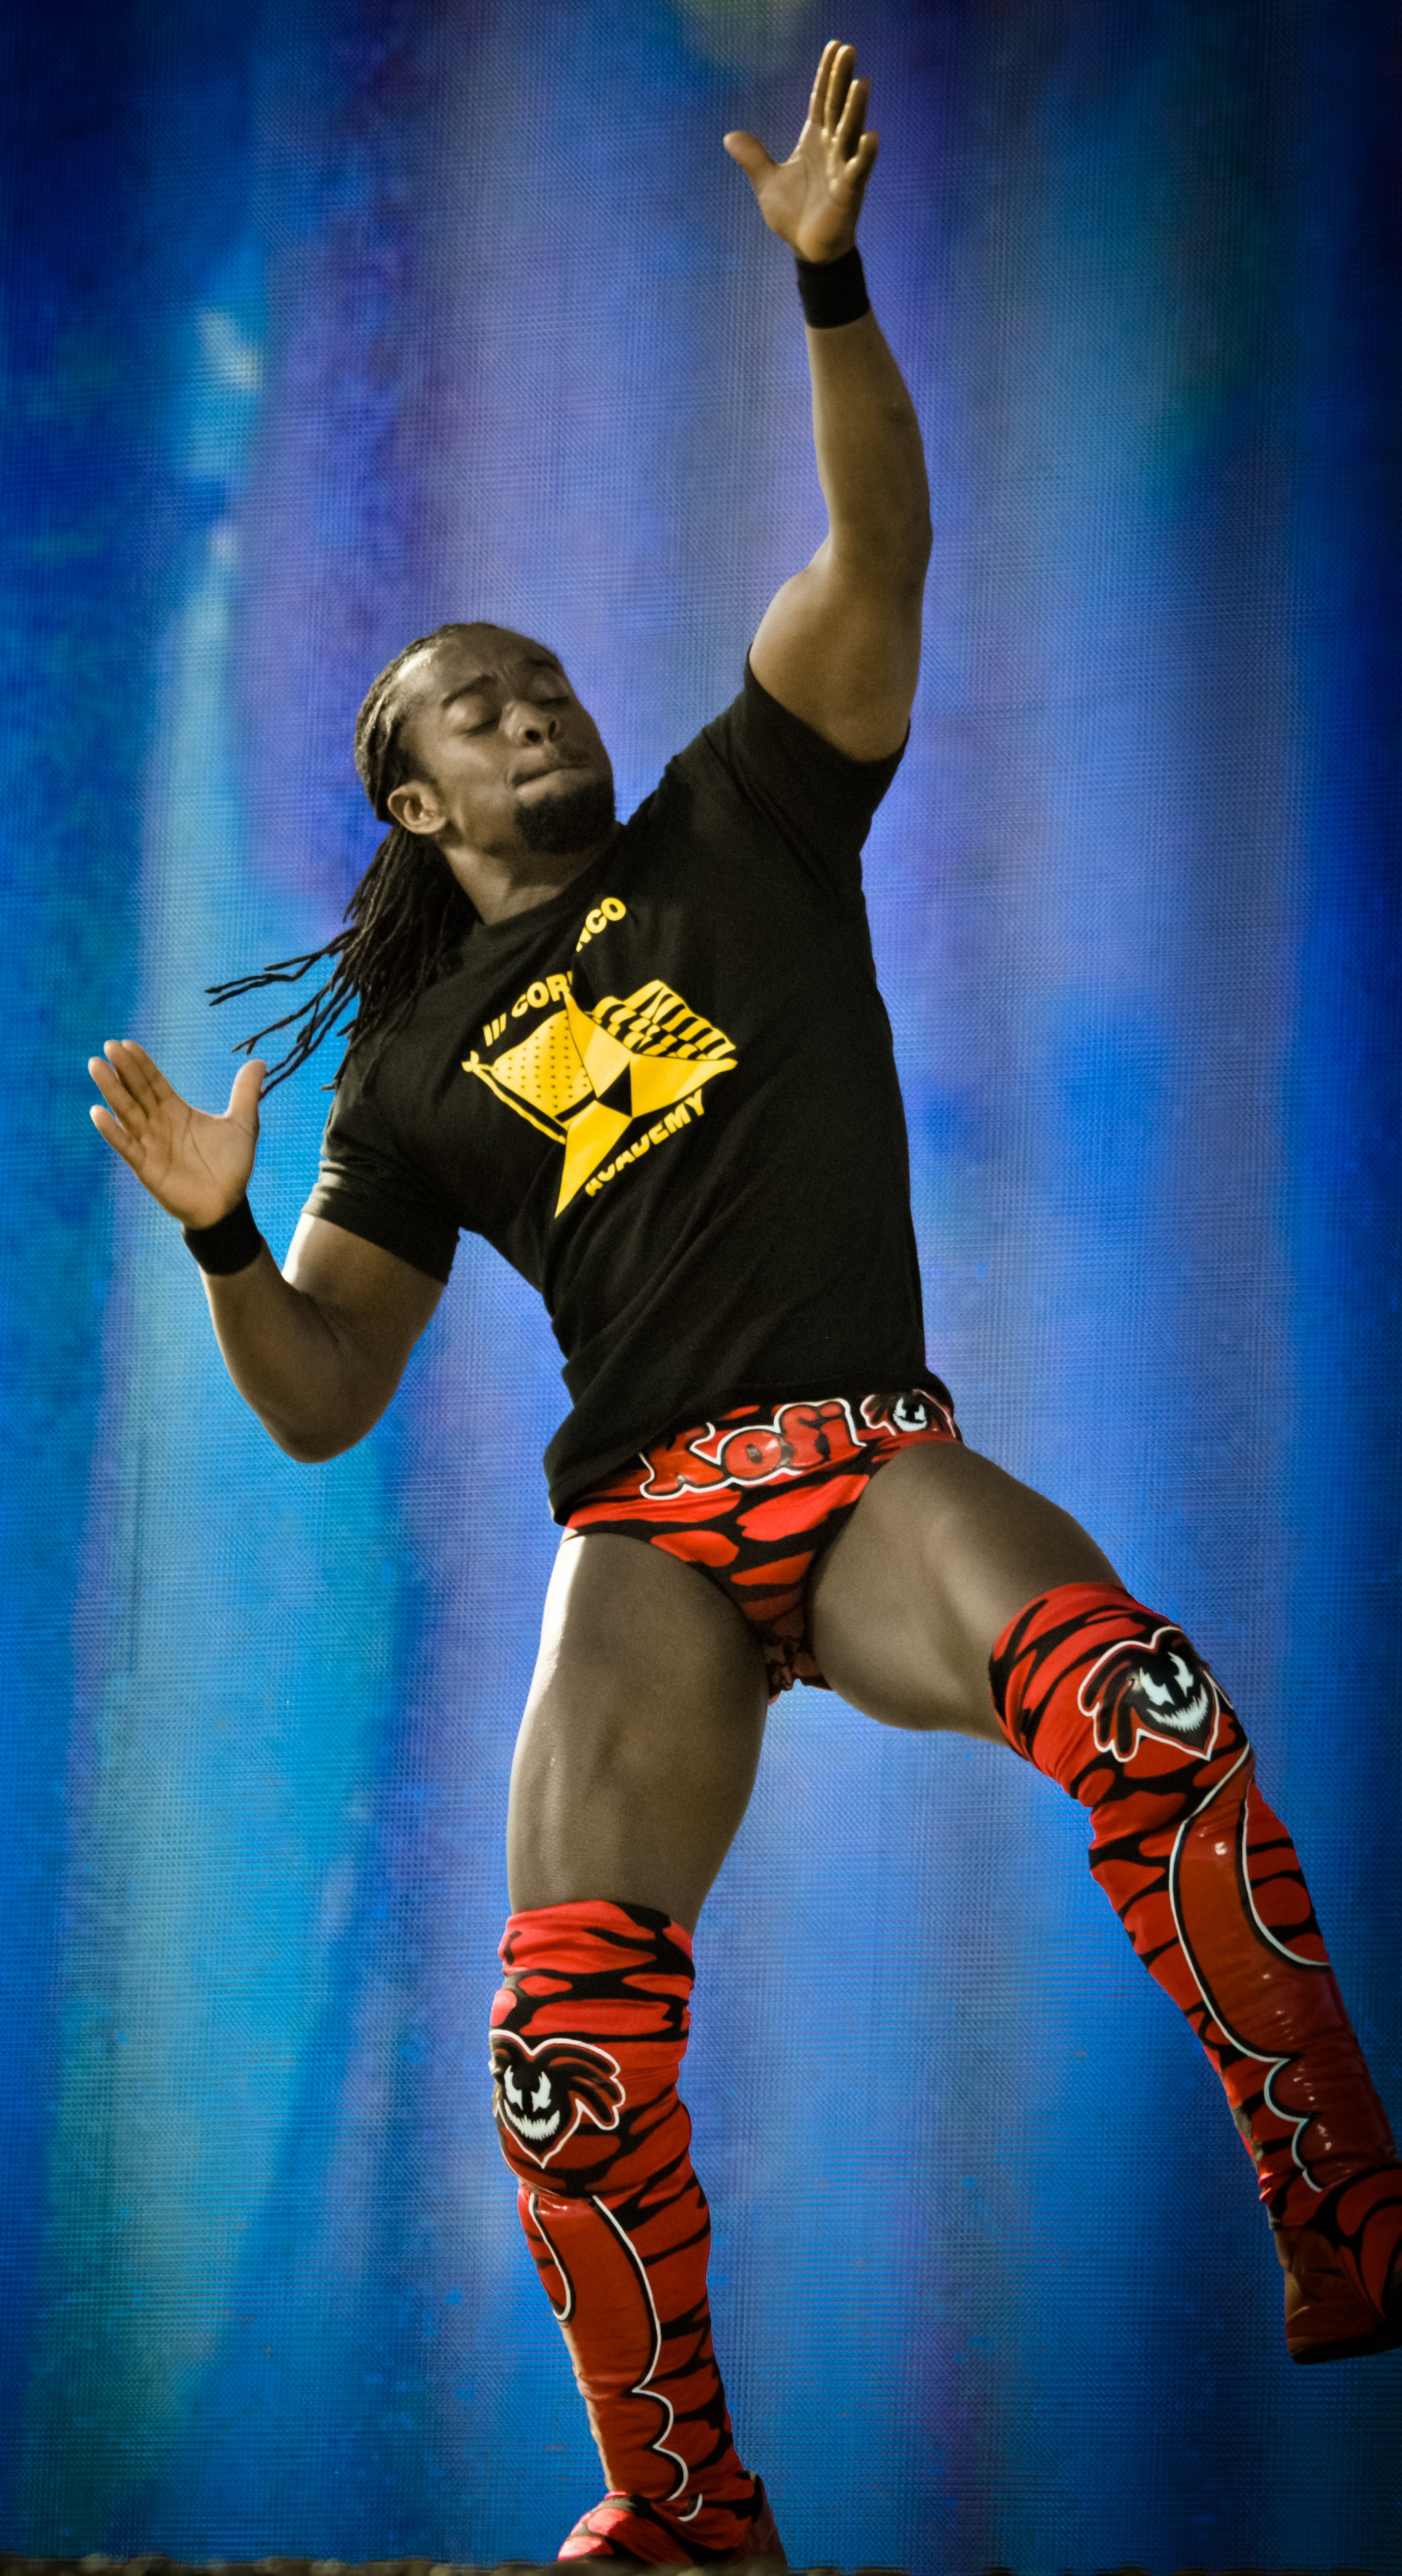 Kofi Kingston Wikipedia The Free Encyclopedia